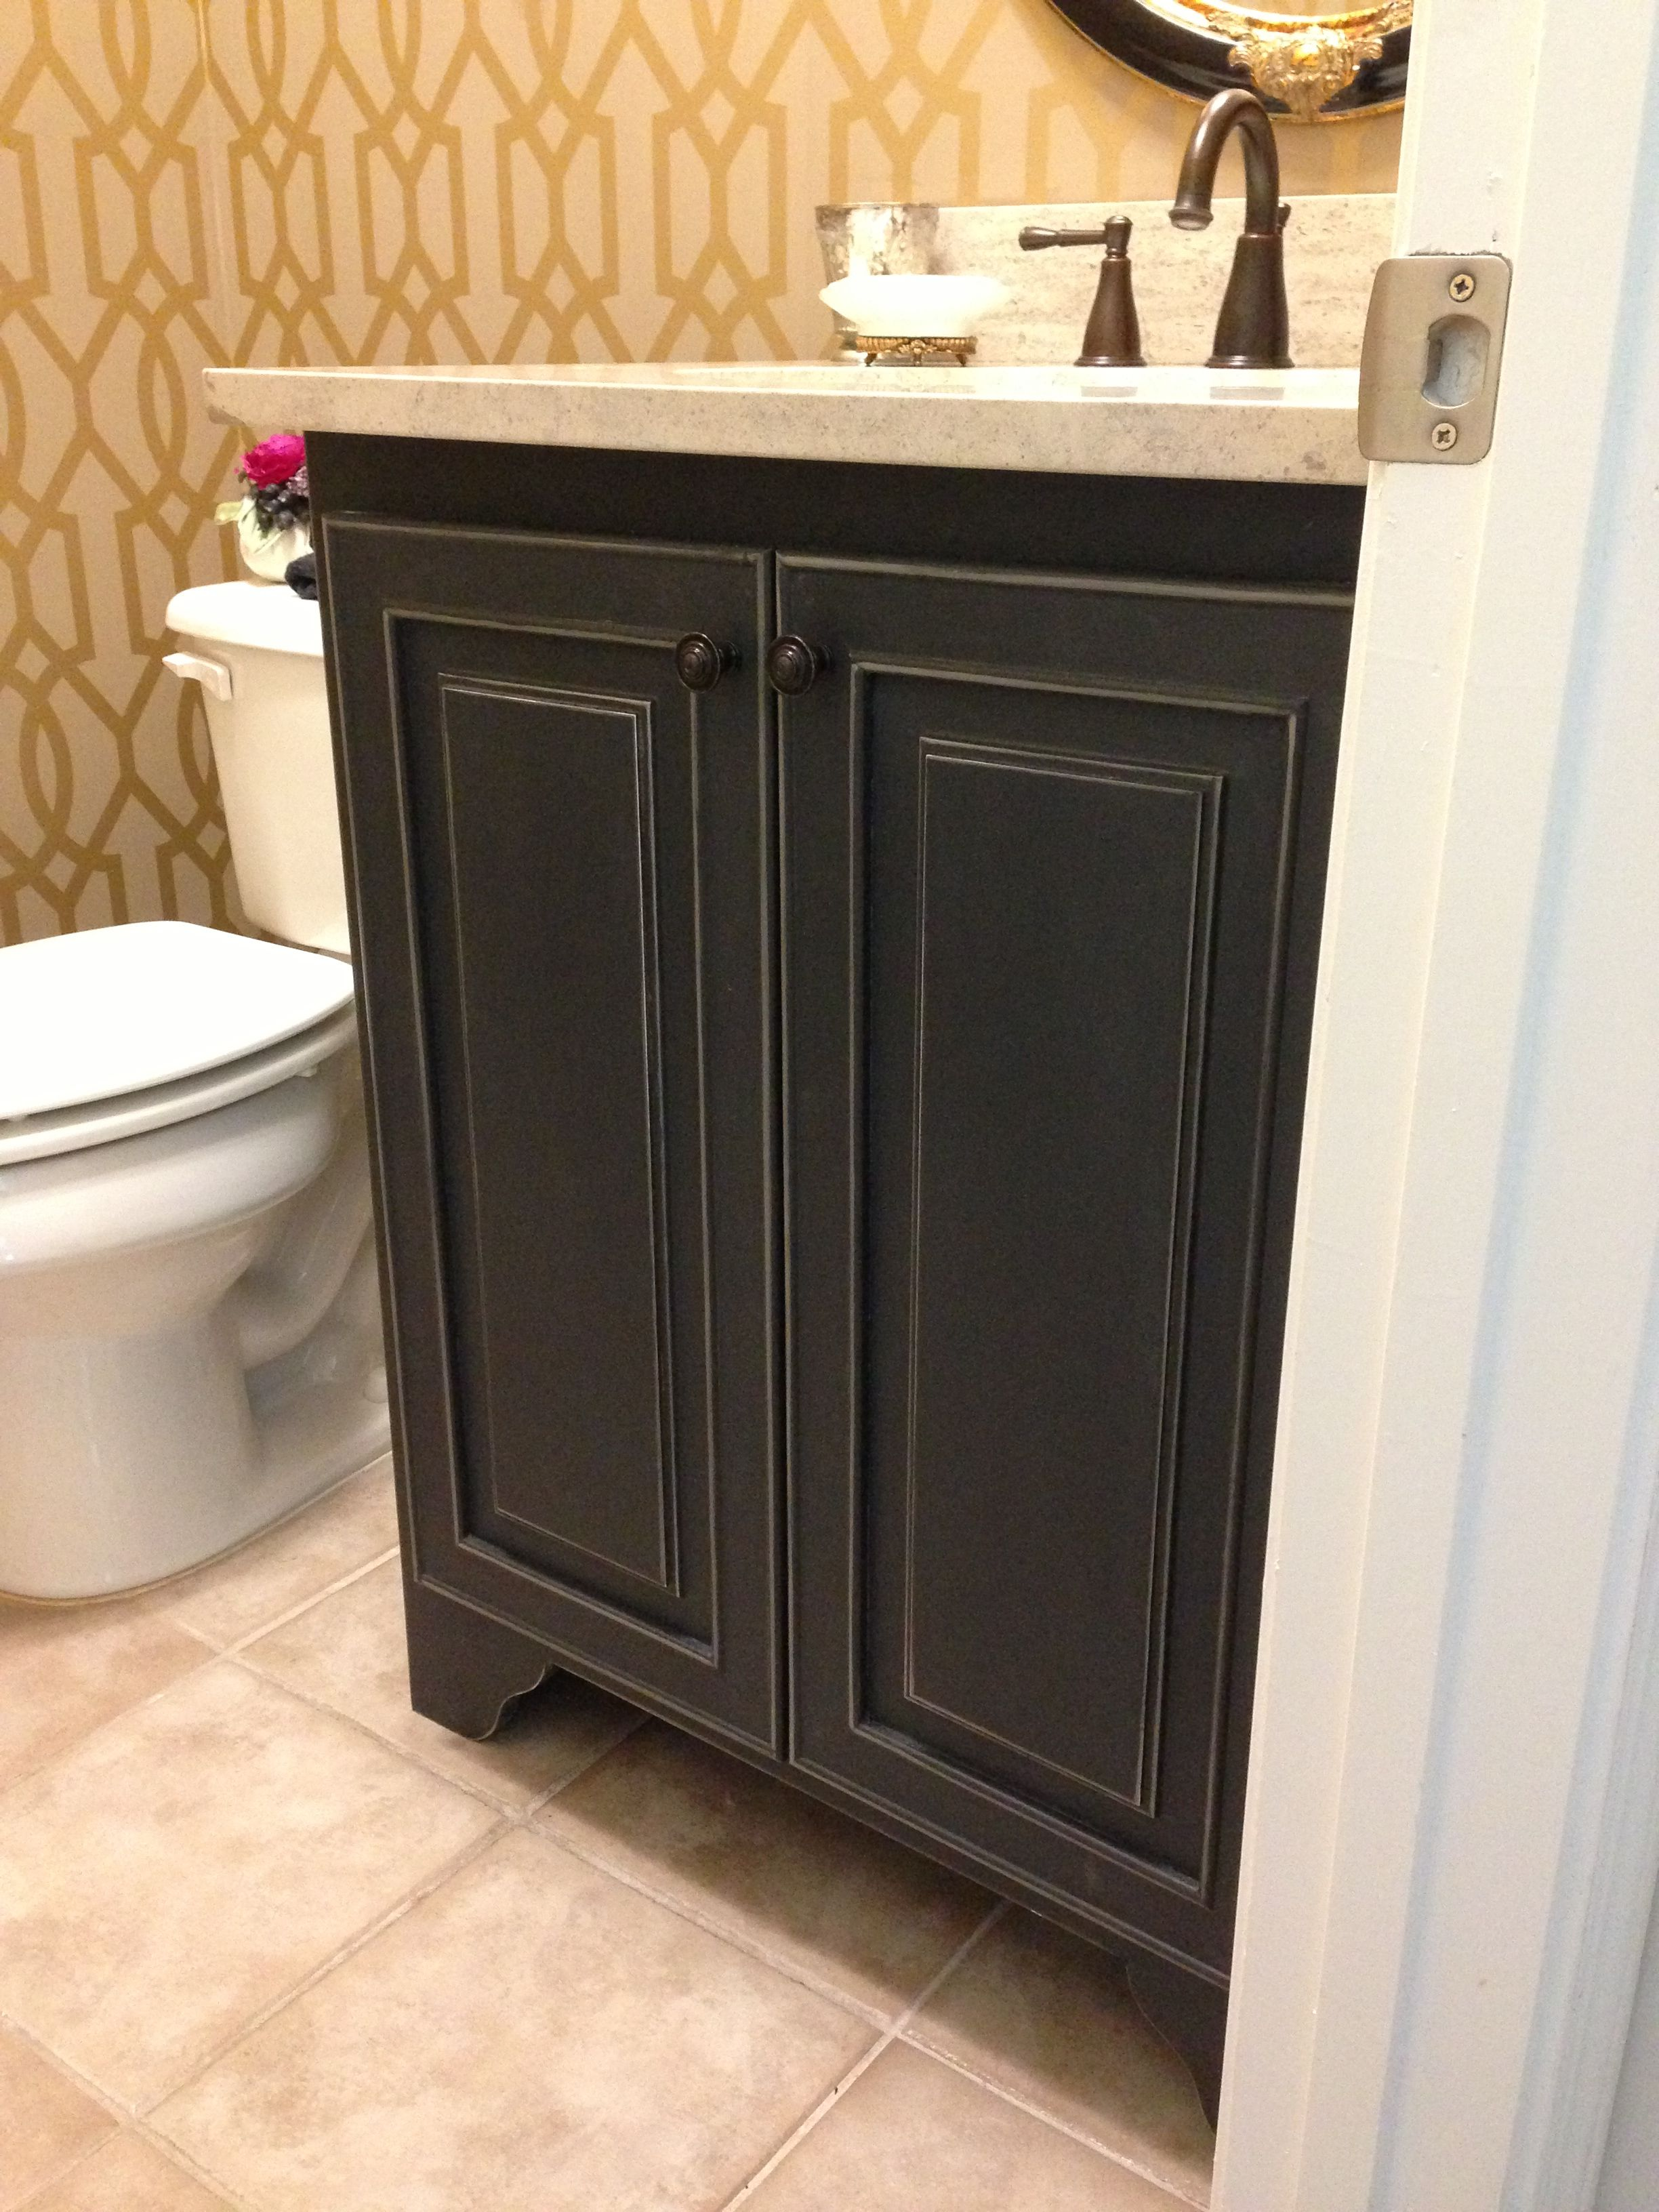 We Replaced A Plain Porcelain Pedestal Sink With This